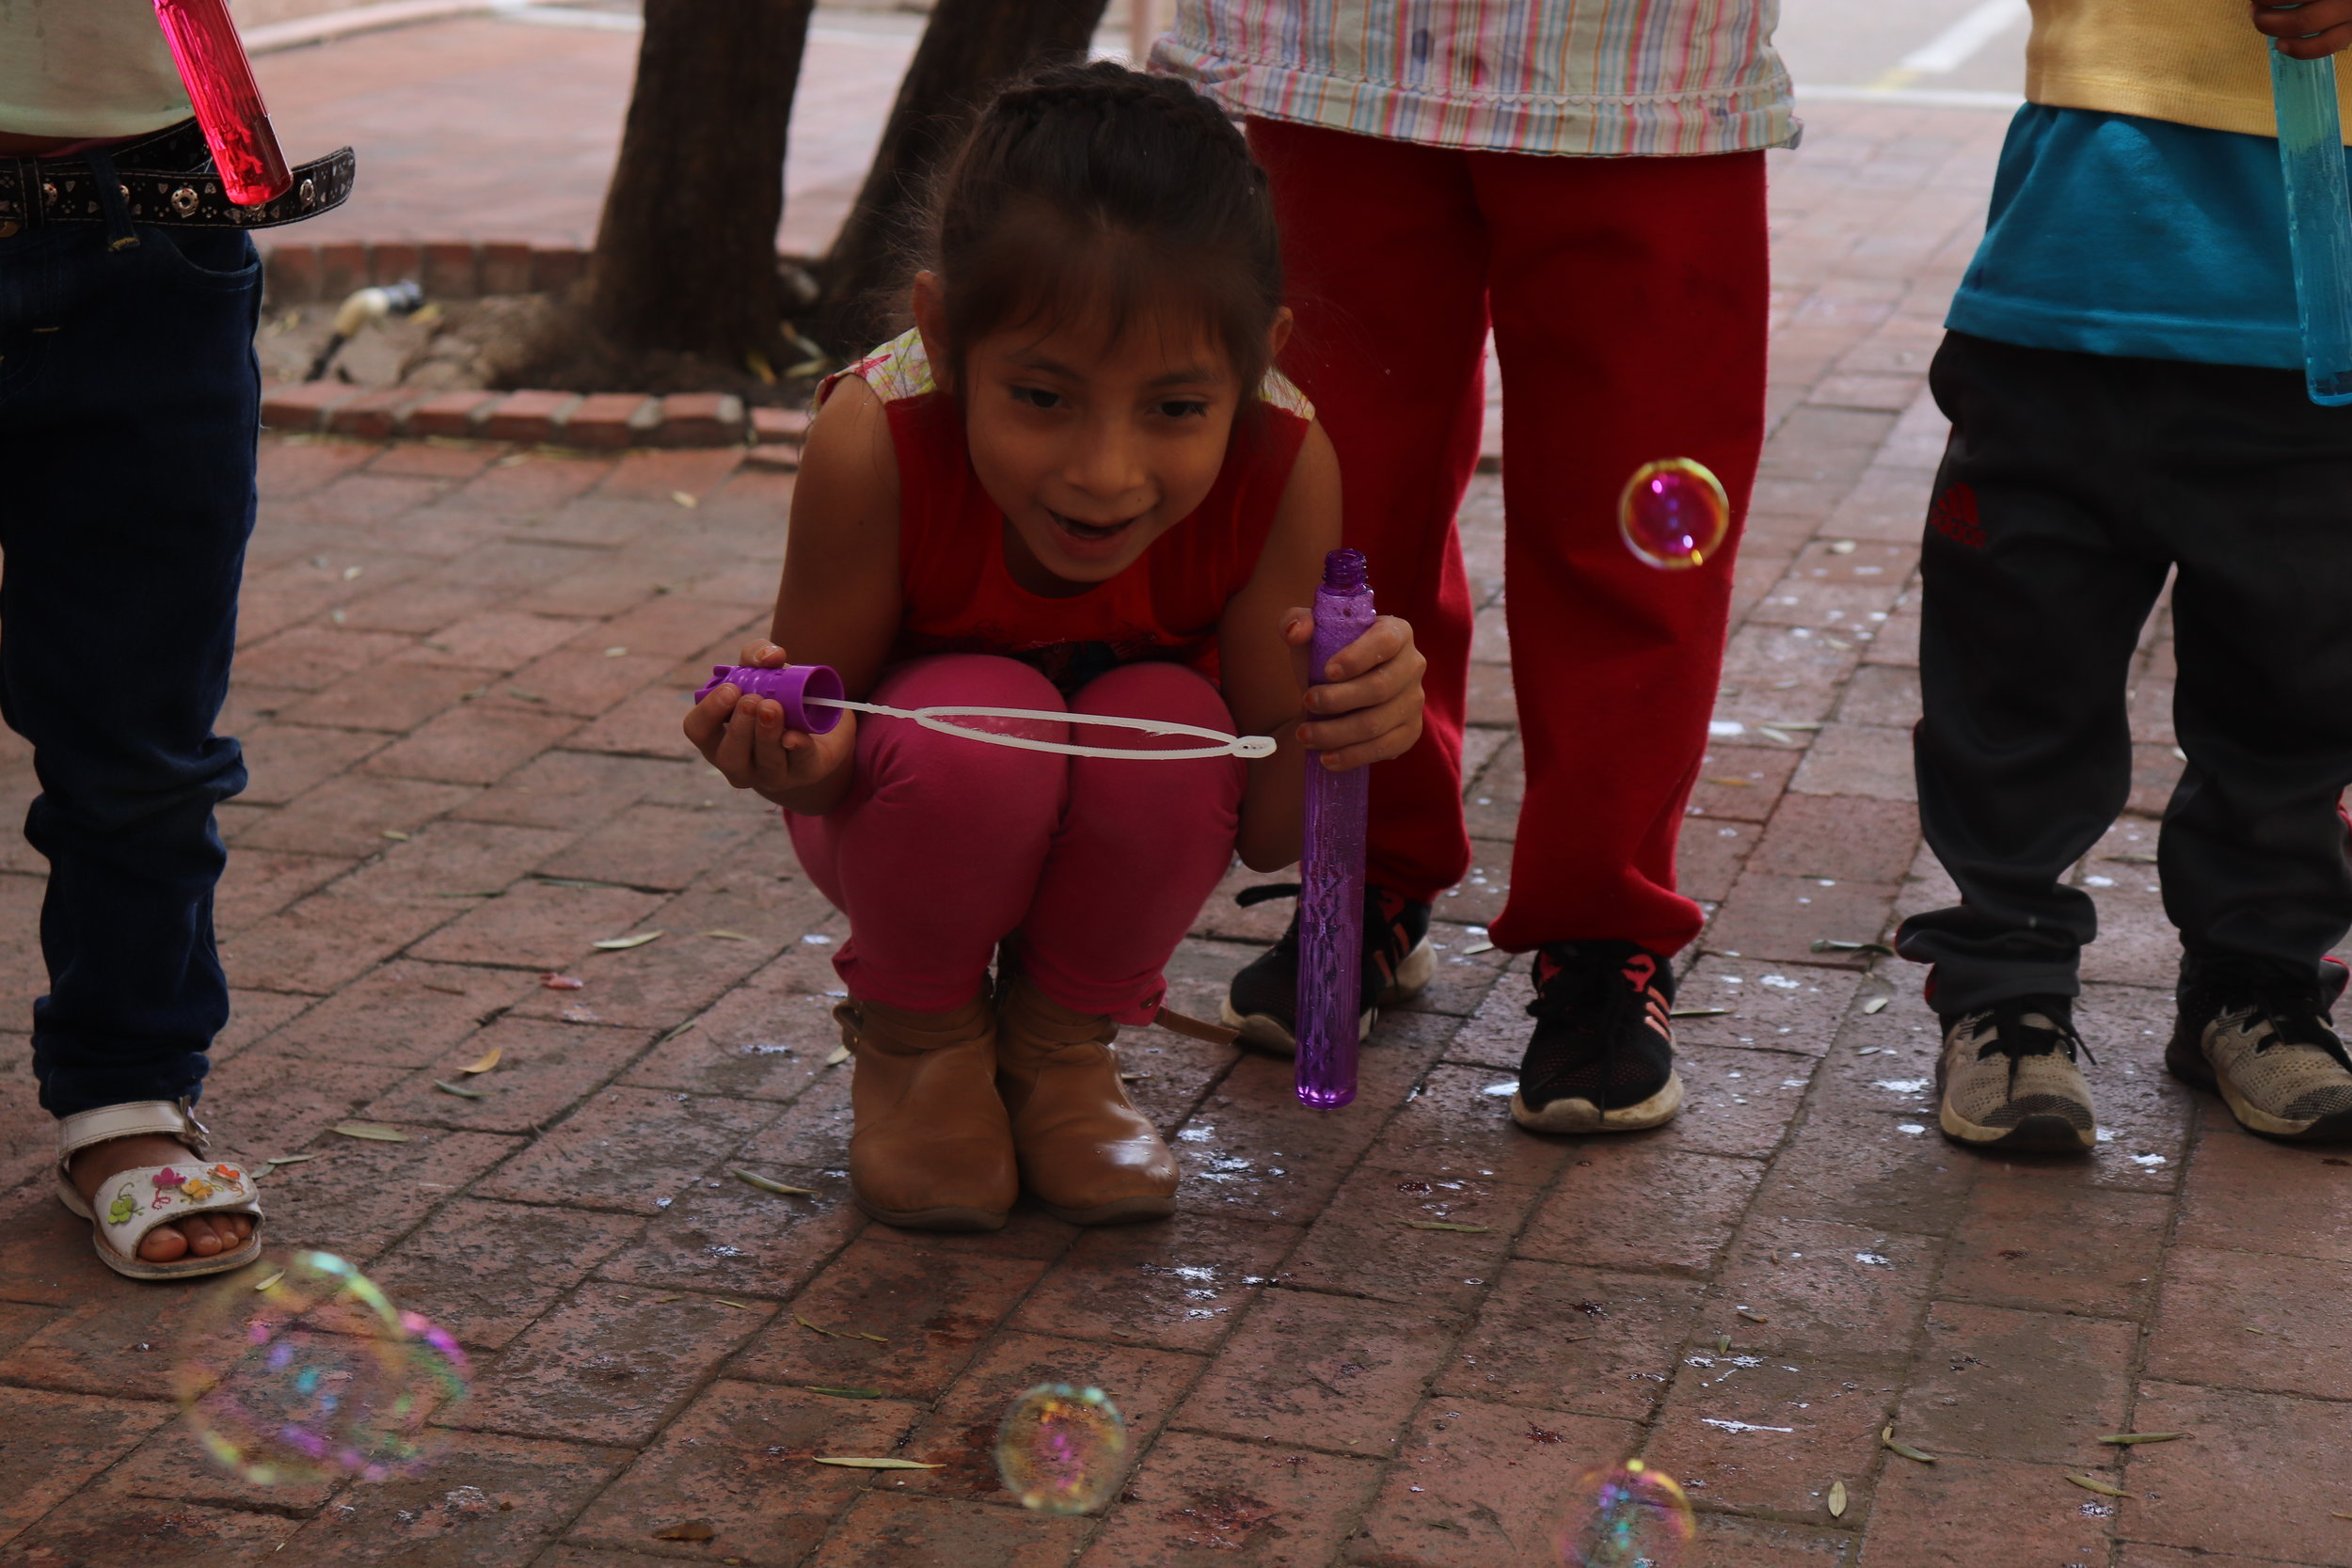 A young girl poses for a photo outside of The Inn Project after playing with the bubbles we donated. According to statistics provided by The Inn Project, 76% of the asylum seekers they have helped are from Guatemala.